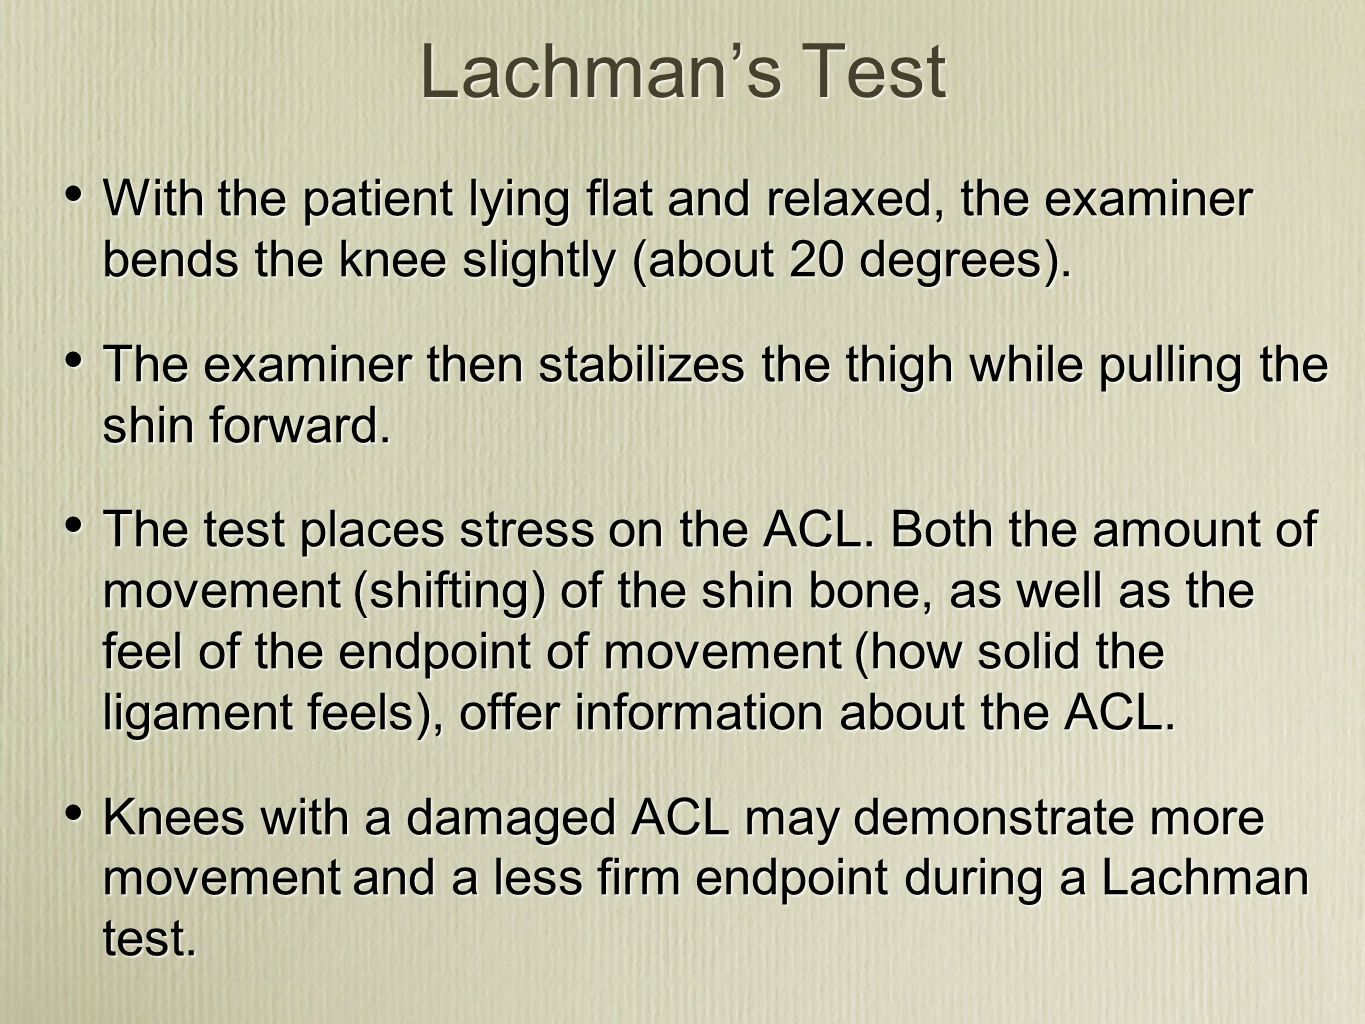 Lachman's Test With the patient lying flat and relaxed, the examiner bends the knee slightly (about 20 degrees).